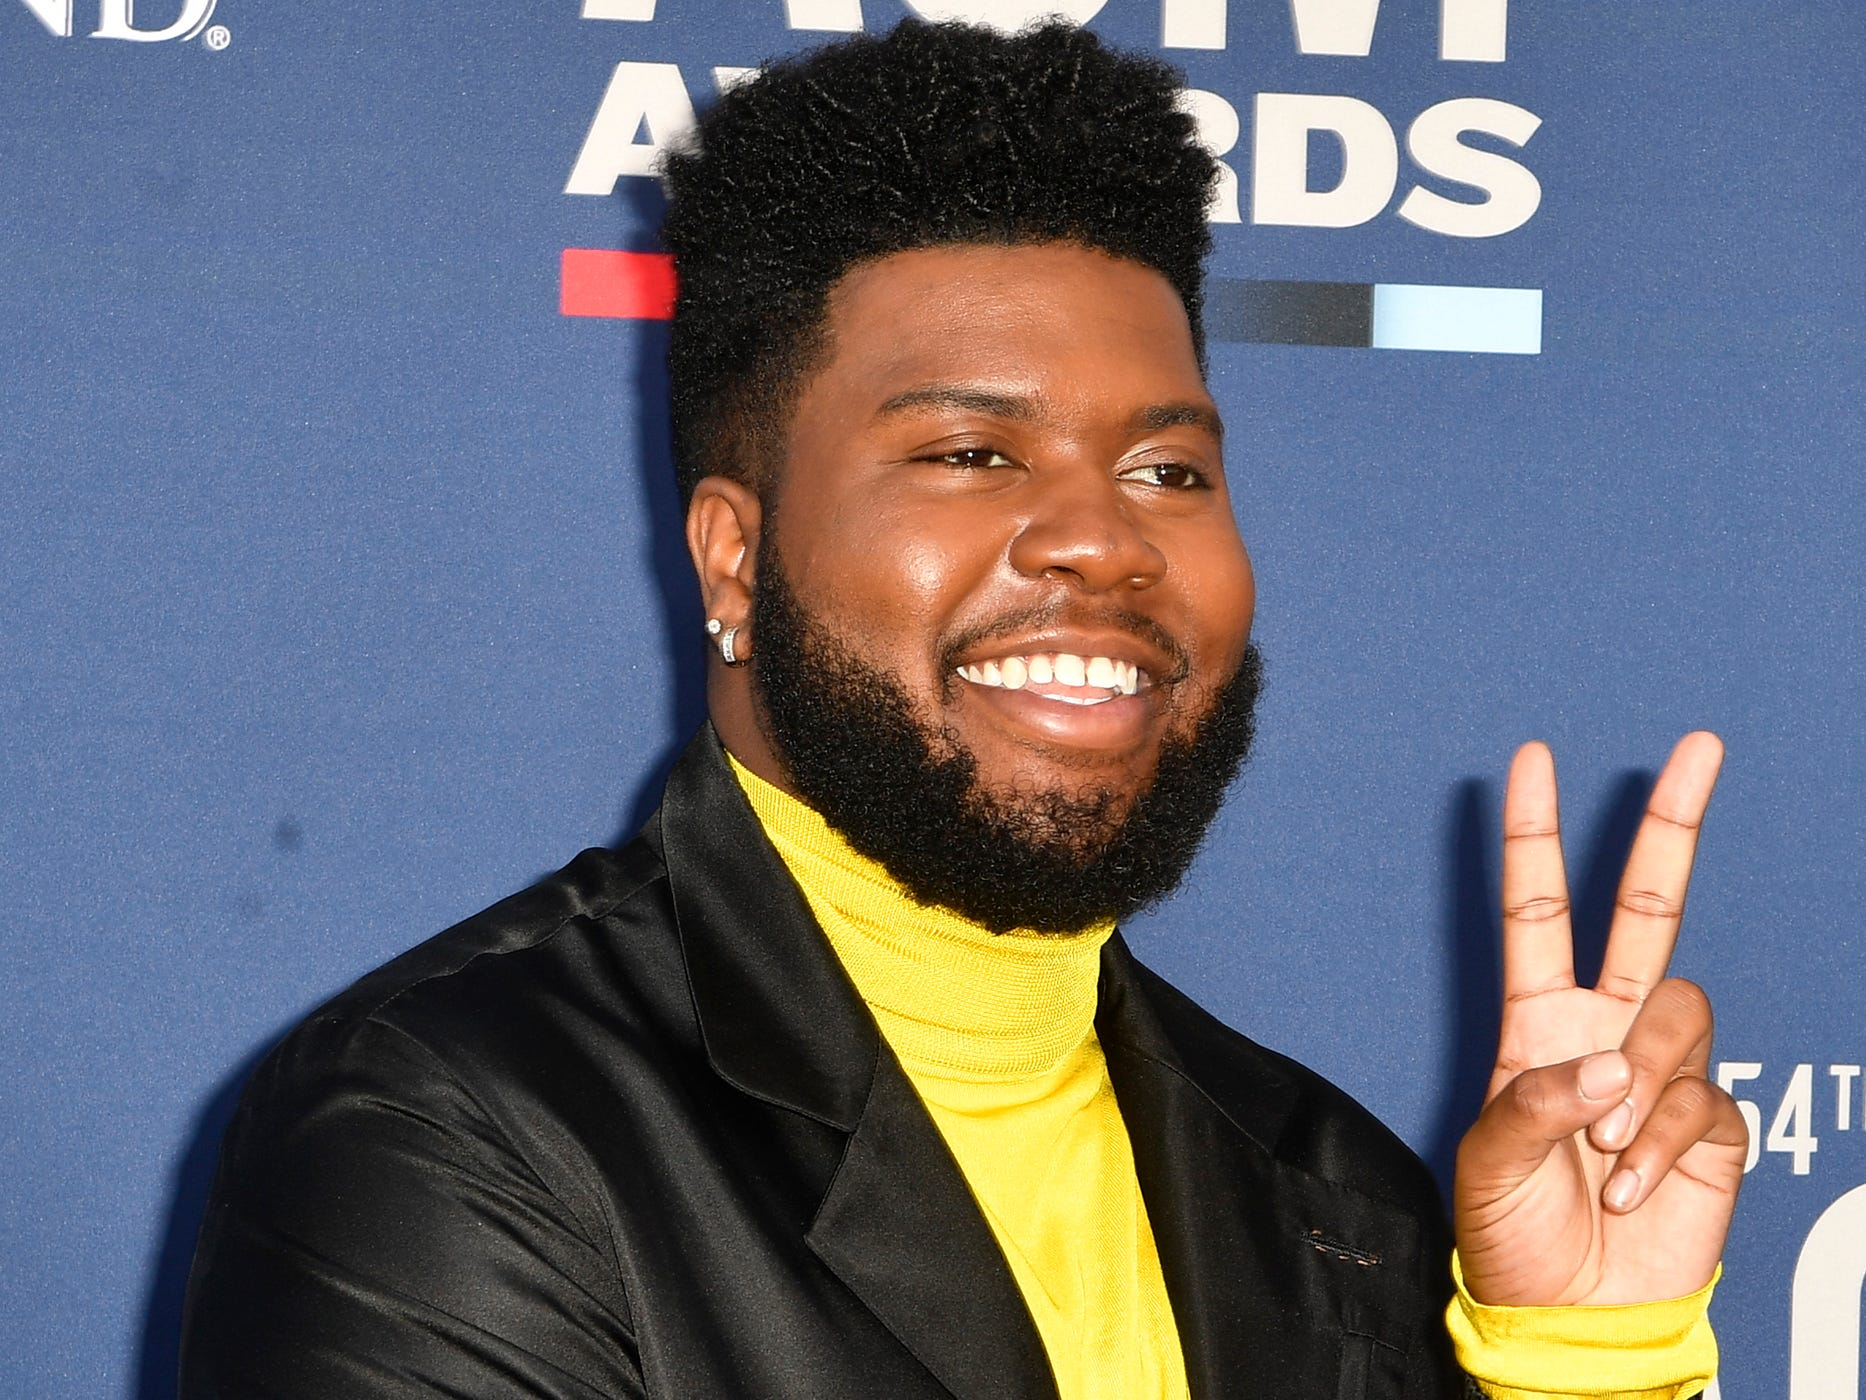 Khalid walks the red carpet at the 54TH Academy of Country Music Awards Sunday, April 7, 2019, in Las Vegas, Nev.